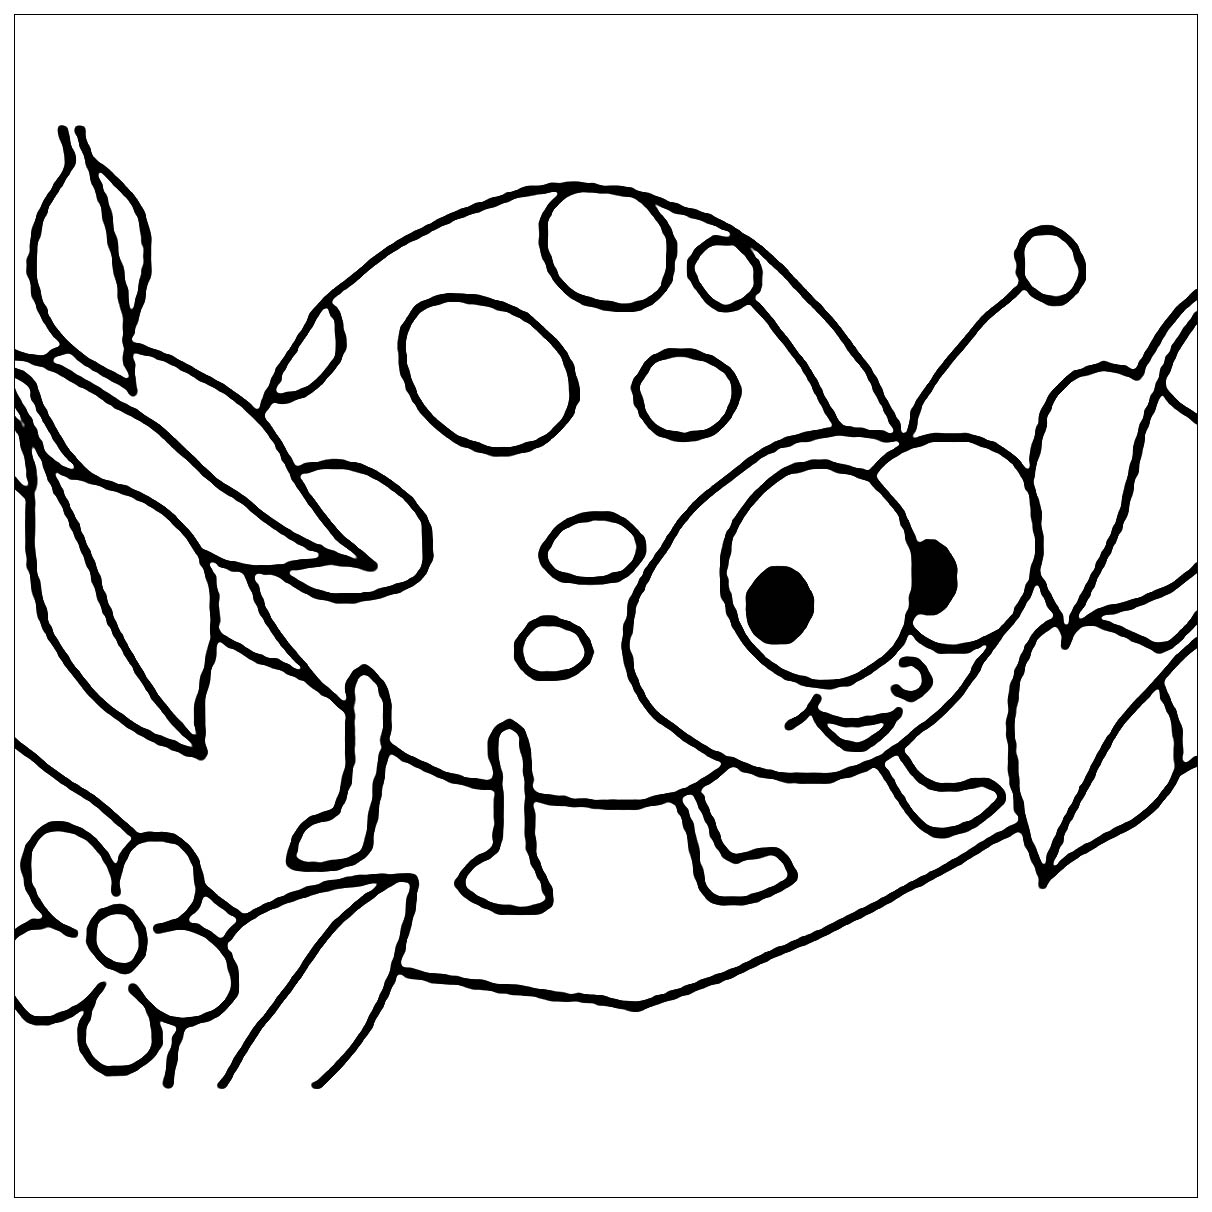 insect coloring pictures insects to color for kids insects kids coloring pages insect coloring pictures